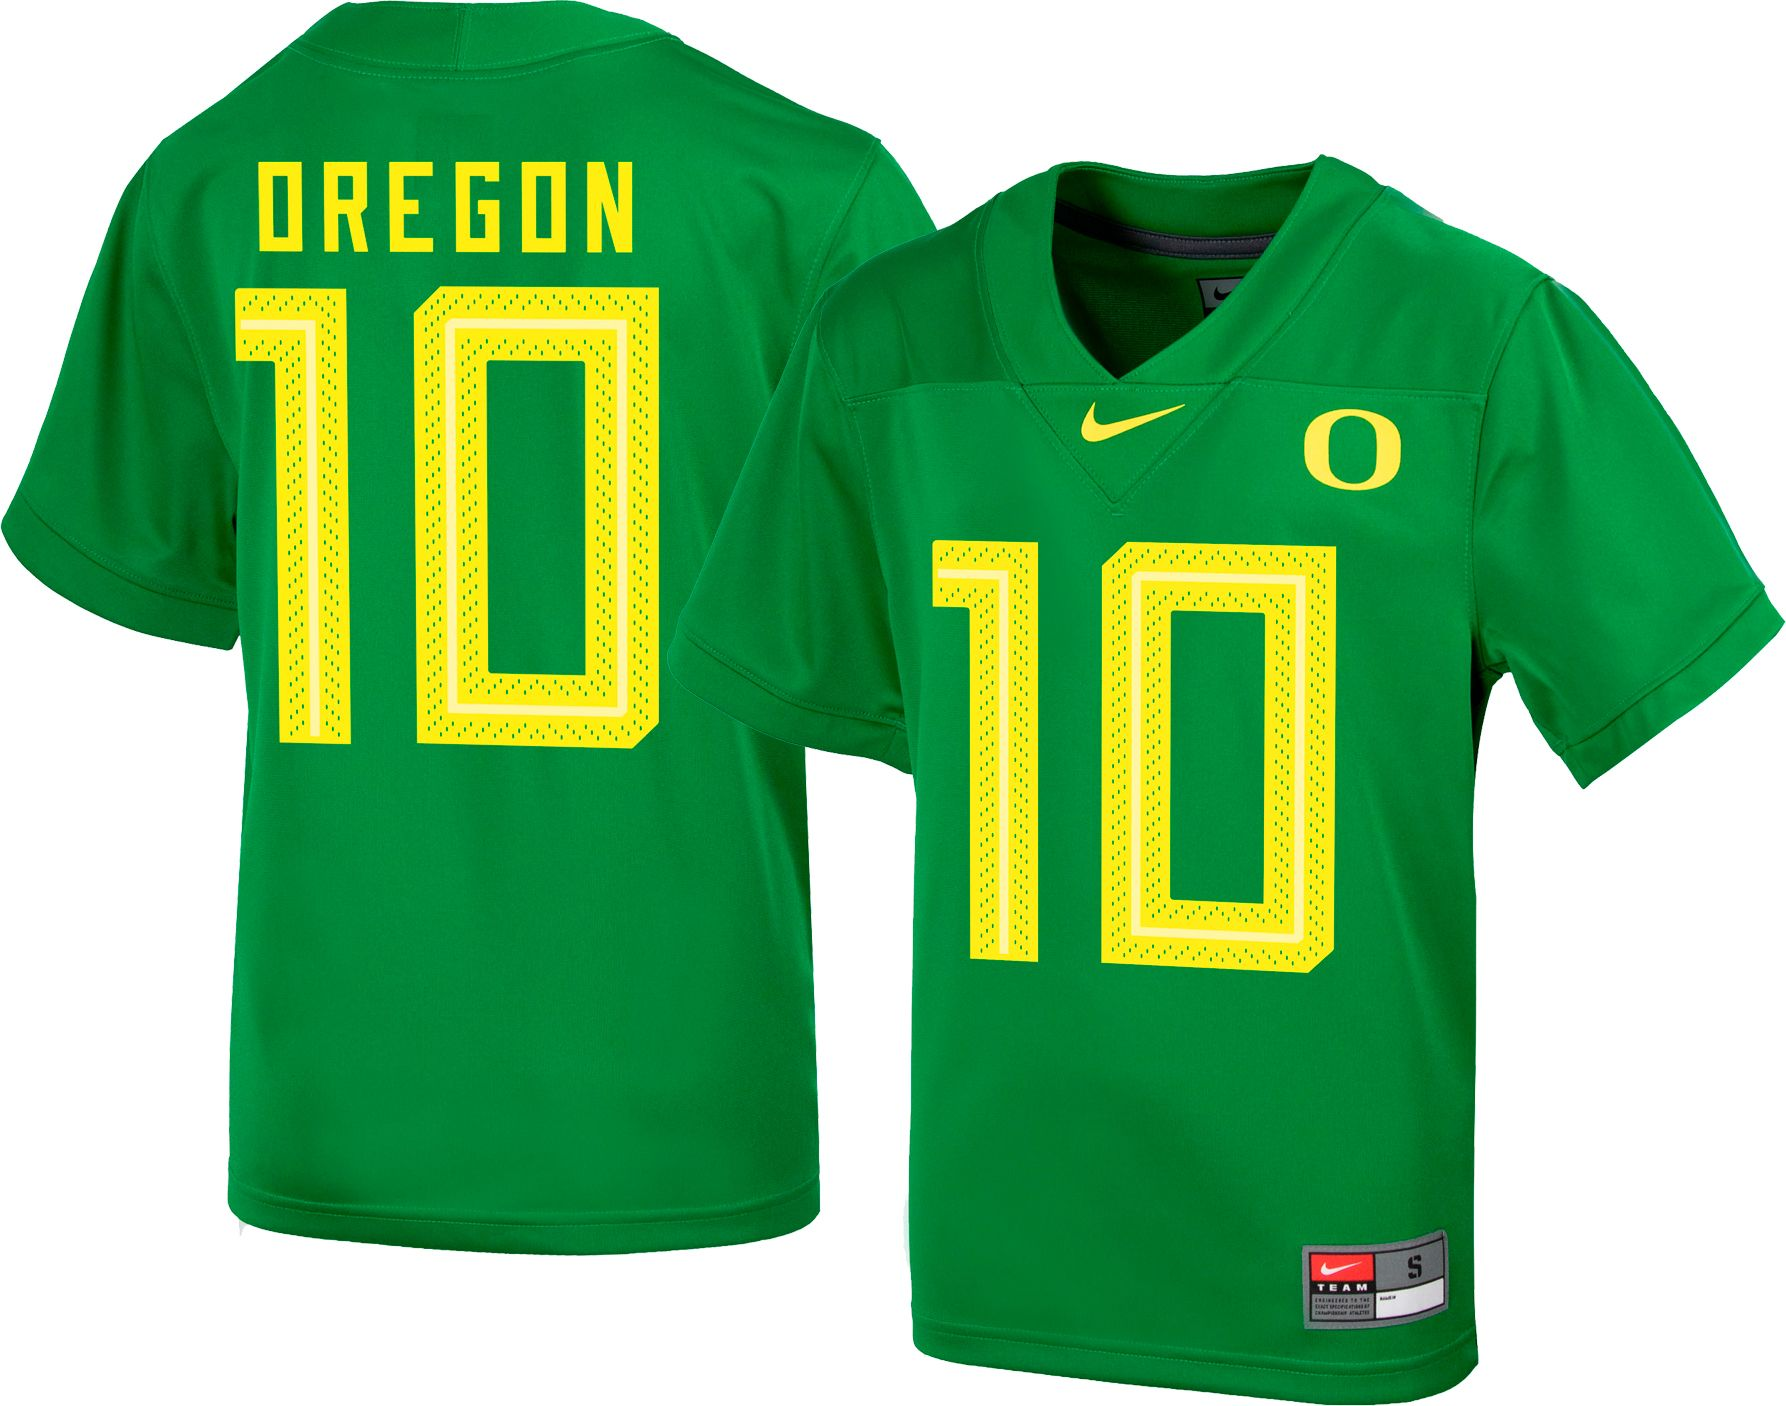 best sneakers f7354 58aef Nike Youth Oregon Ducks #10 Green Replica Football Jersey